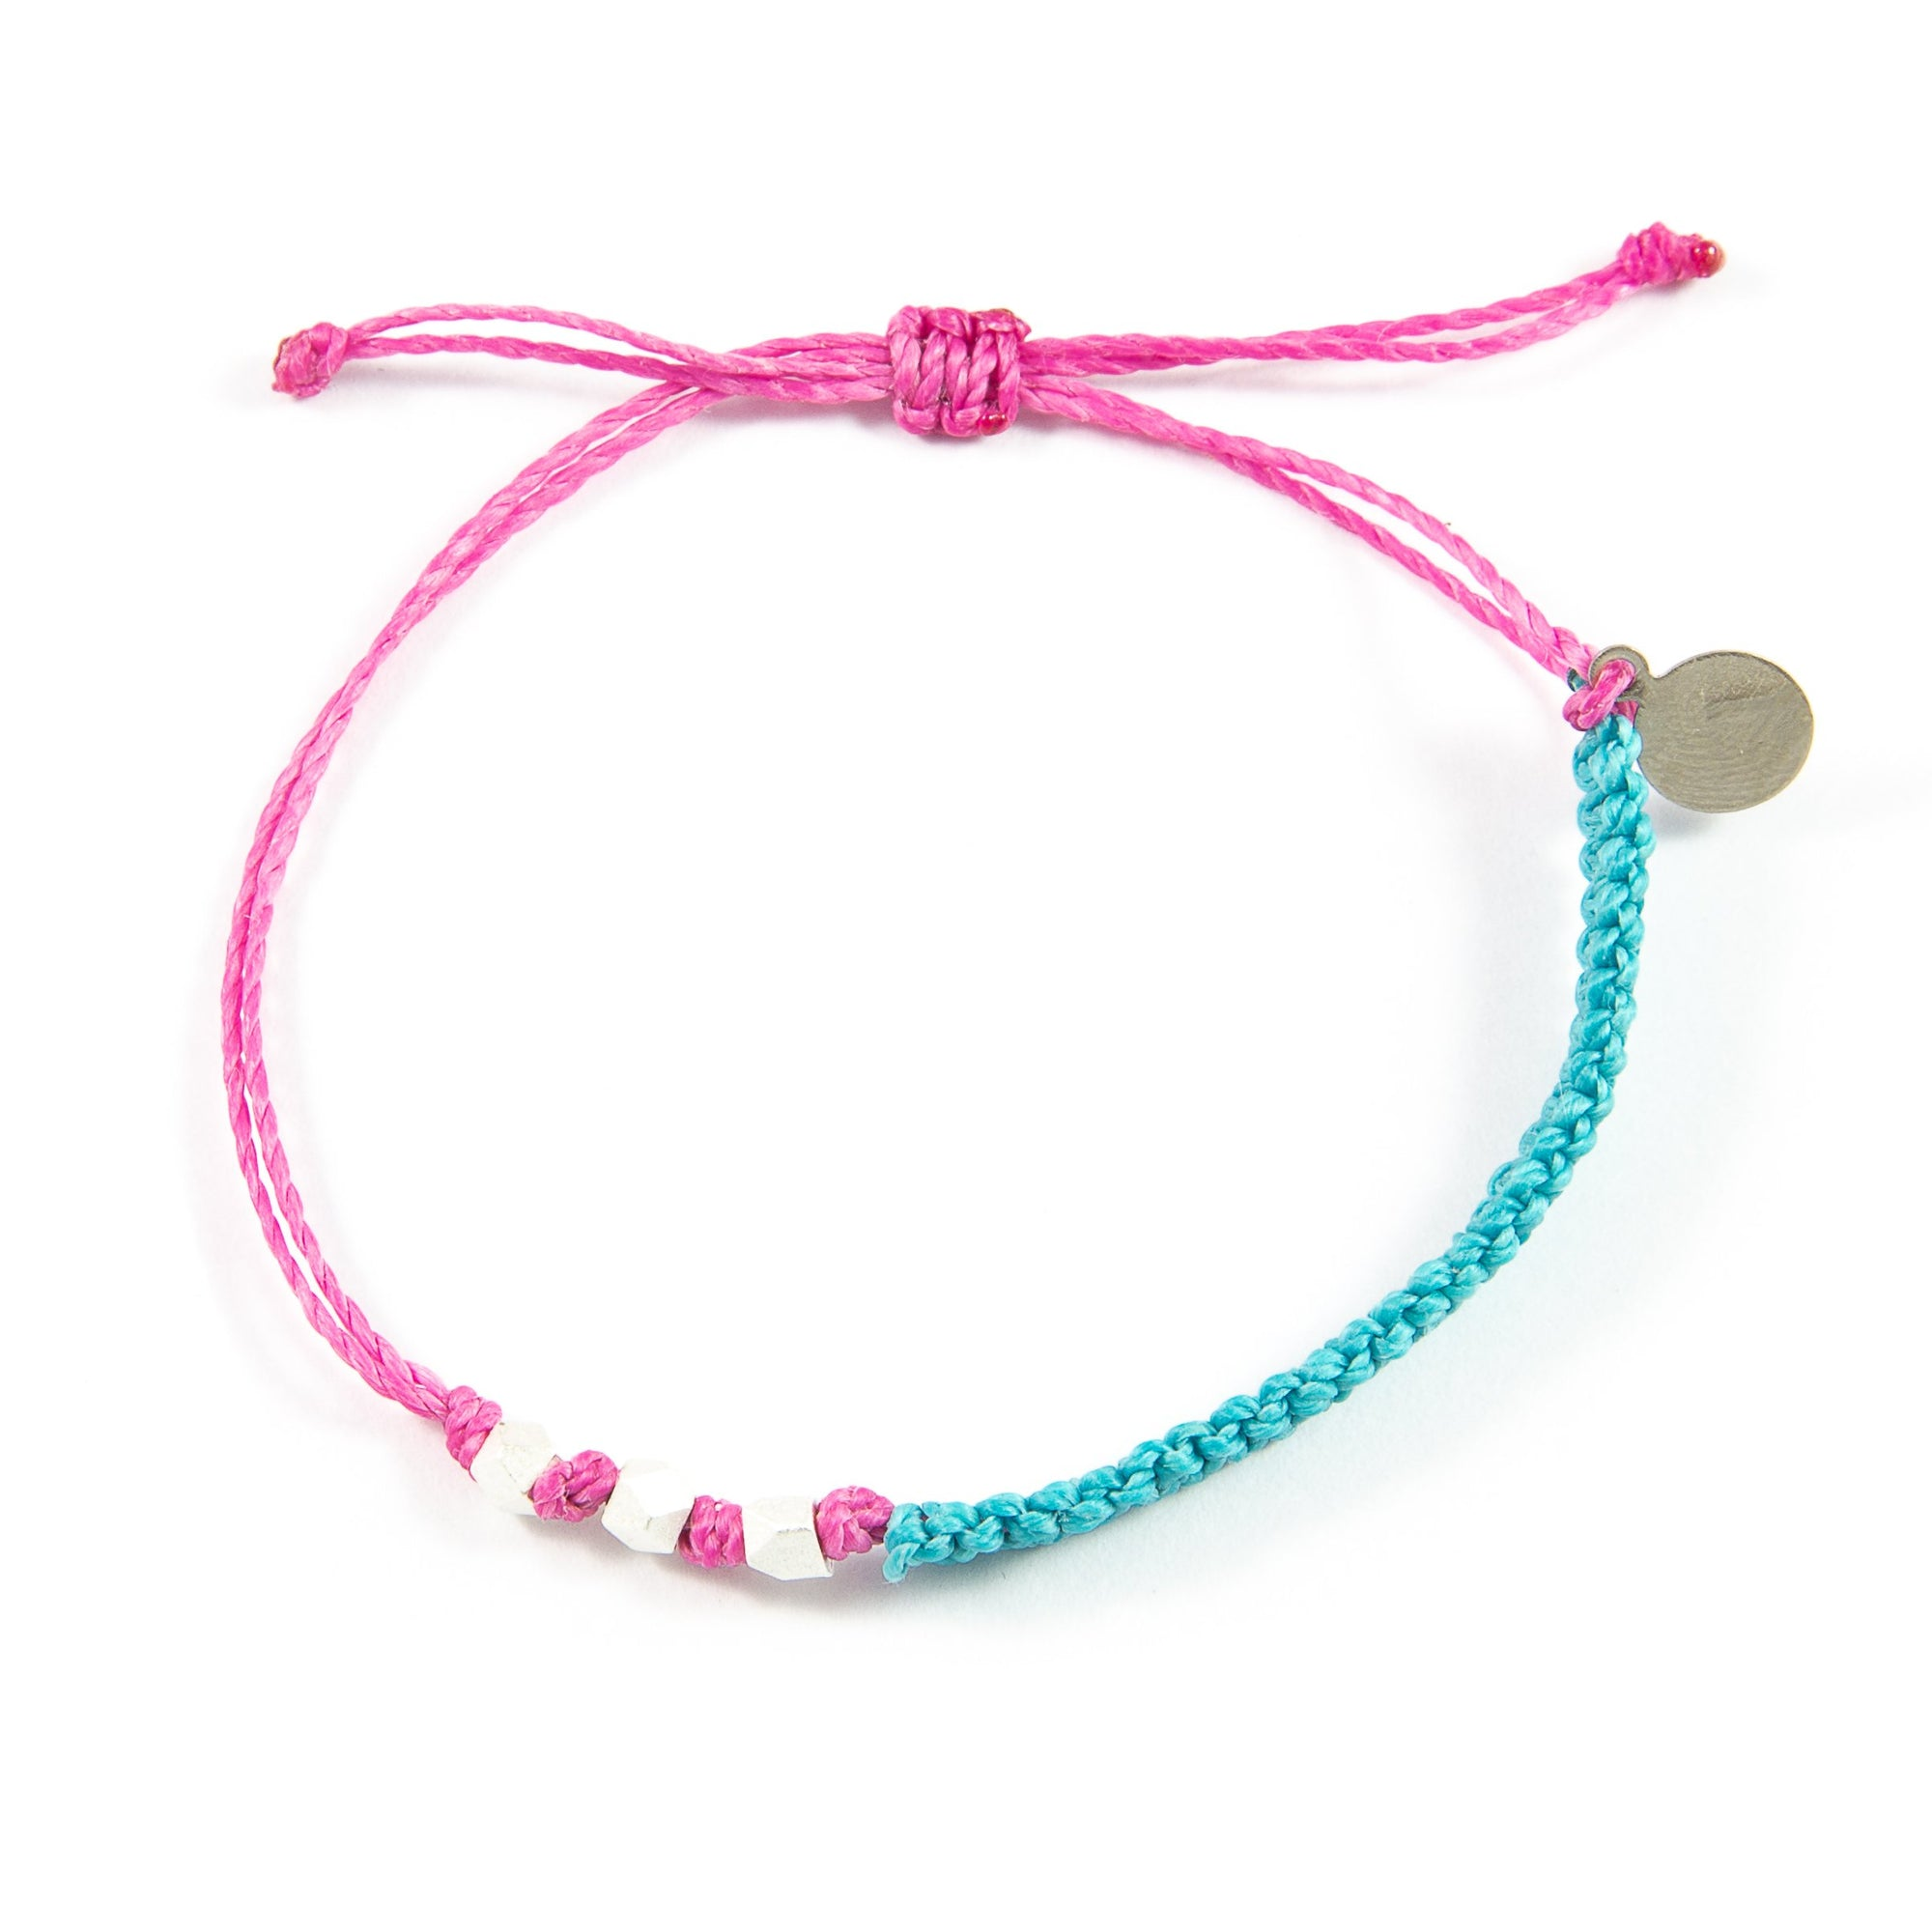 Teal & Rose Macrame Bracelet in Silver